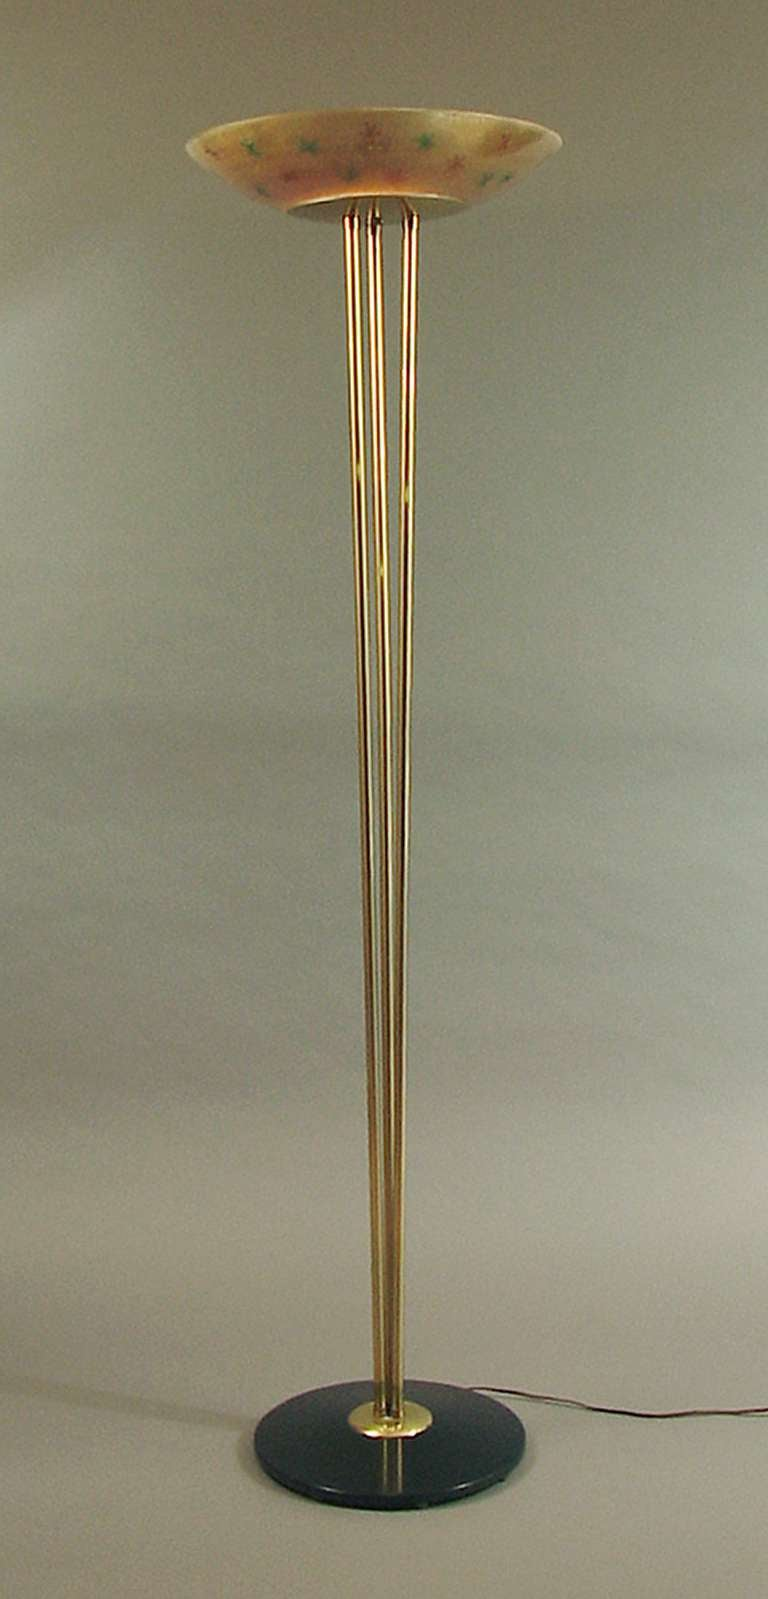 Mid century torchiere floor lamp with cool decorated glass for Torchiere floor lamp with glass shades